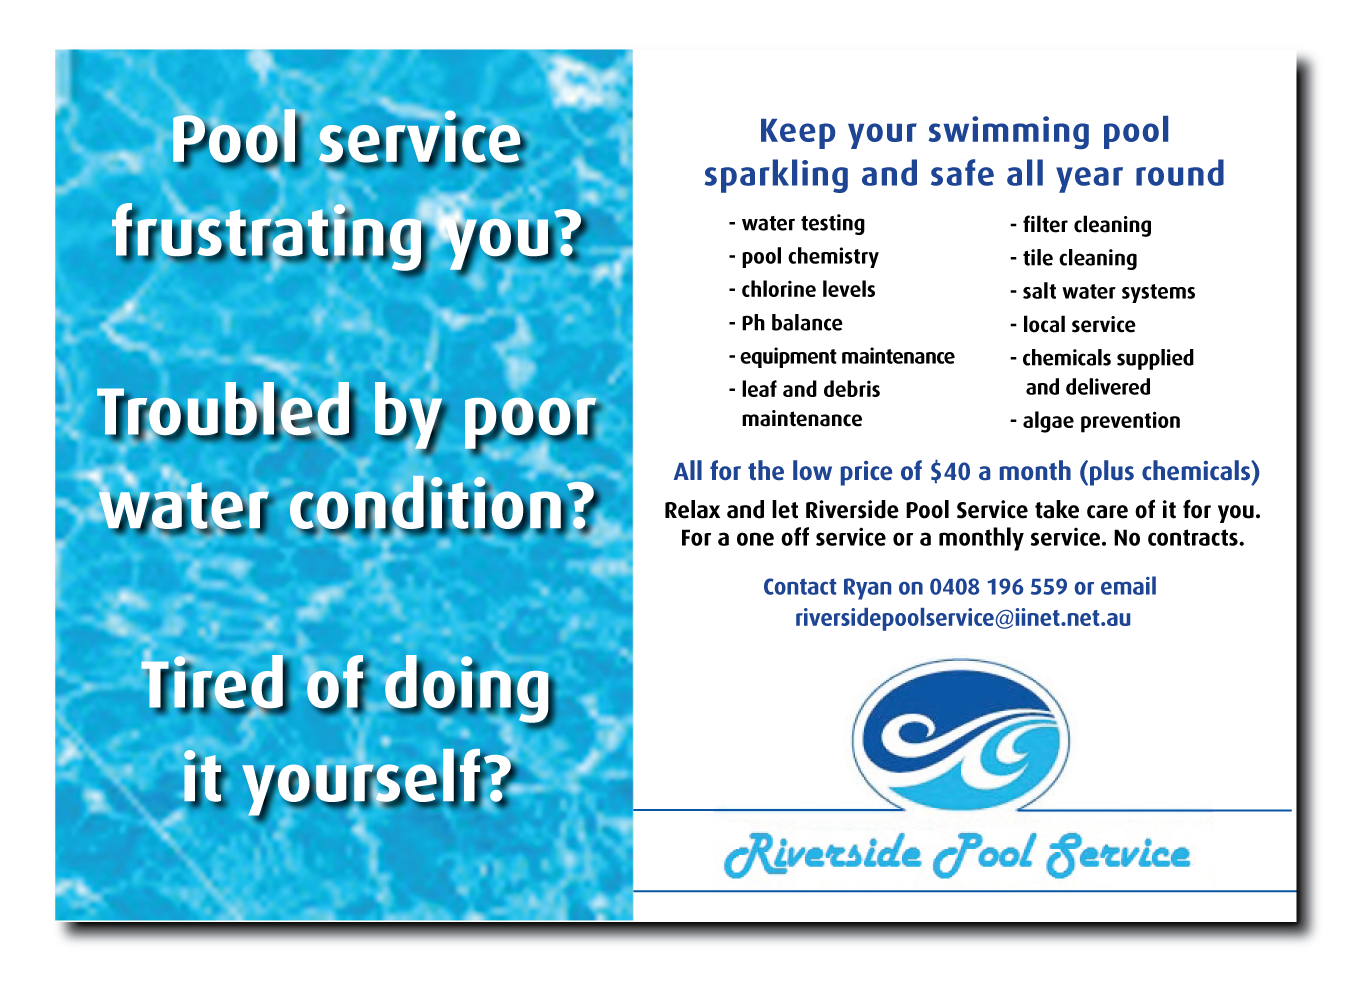 Swimming Pool Service Flyers : Flyer for swimming pool service business design